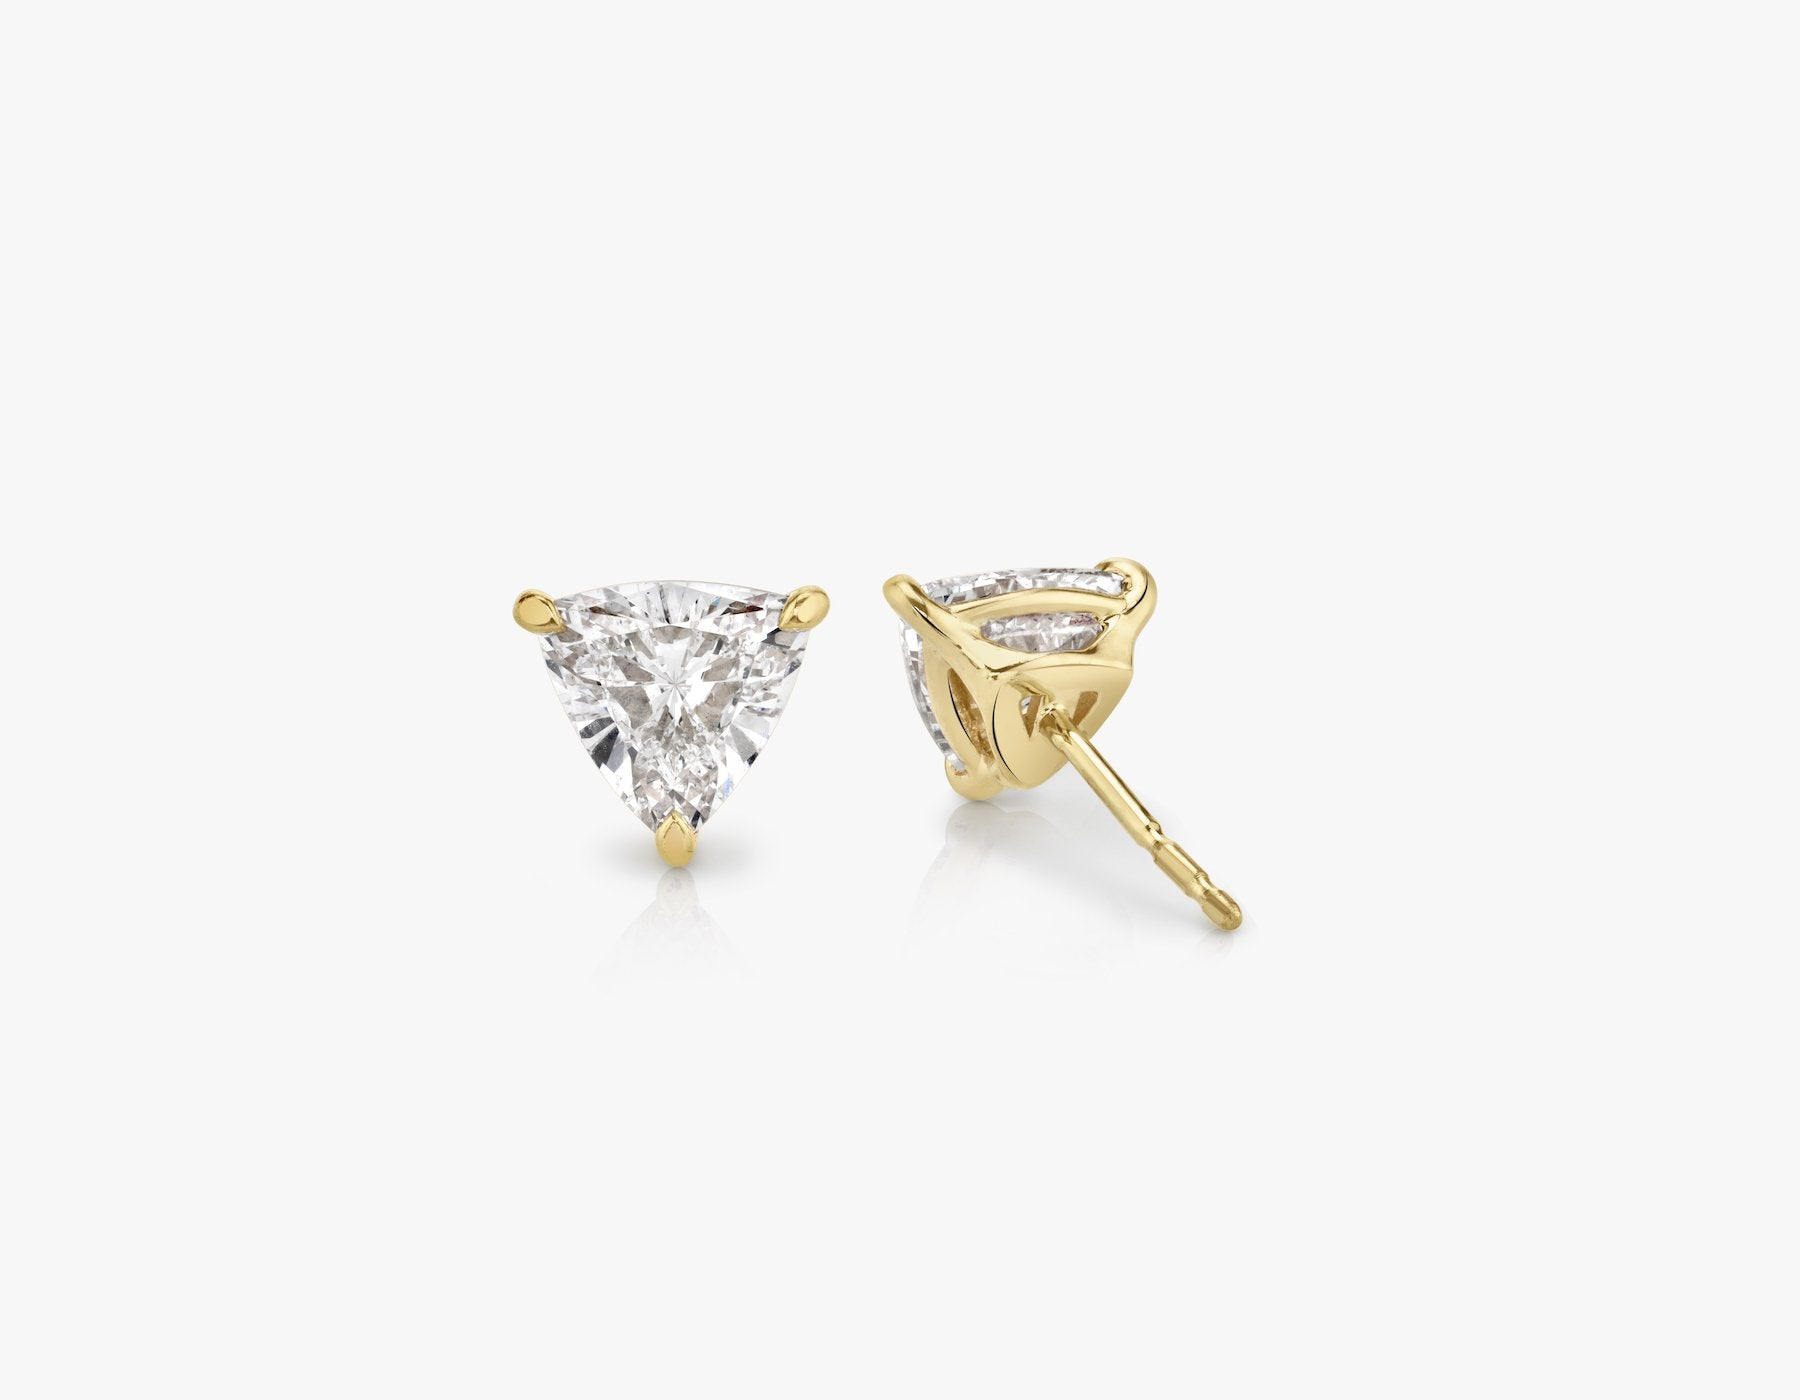 Vrai 14k solid gold Solitaire Trillion Diamond Studs sustainably created triangle diamonds prong set earrings back view, 14K Yellow Gold